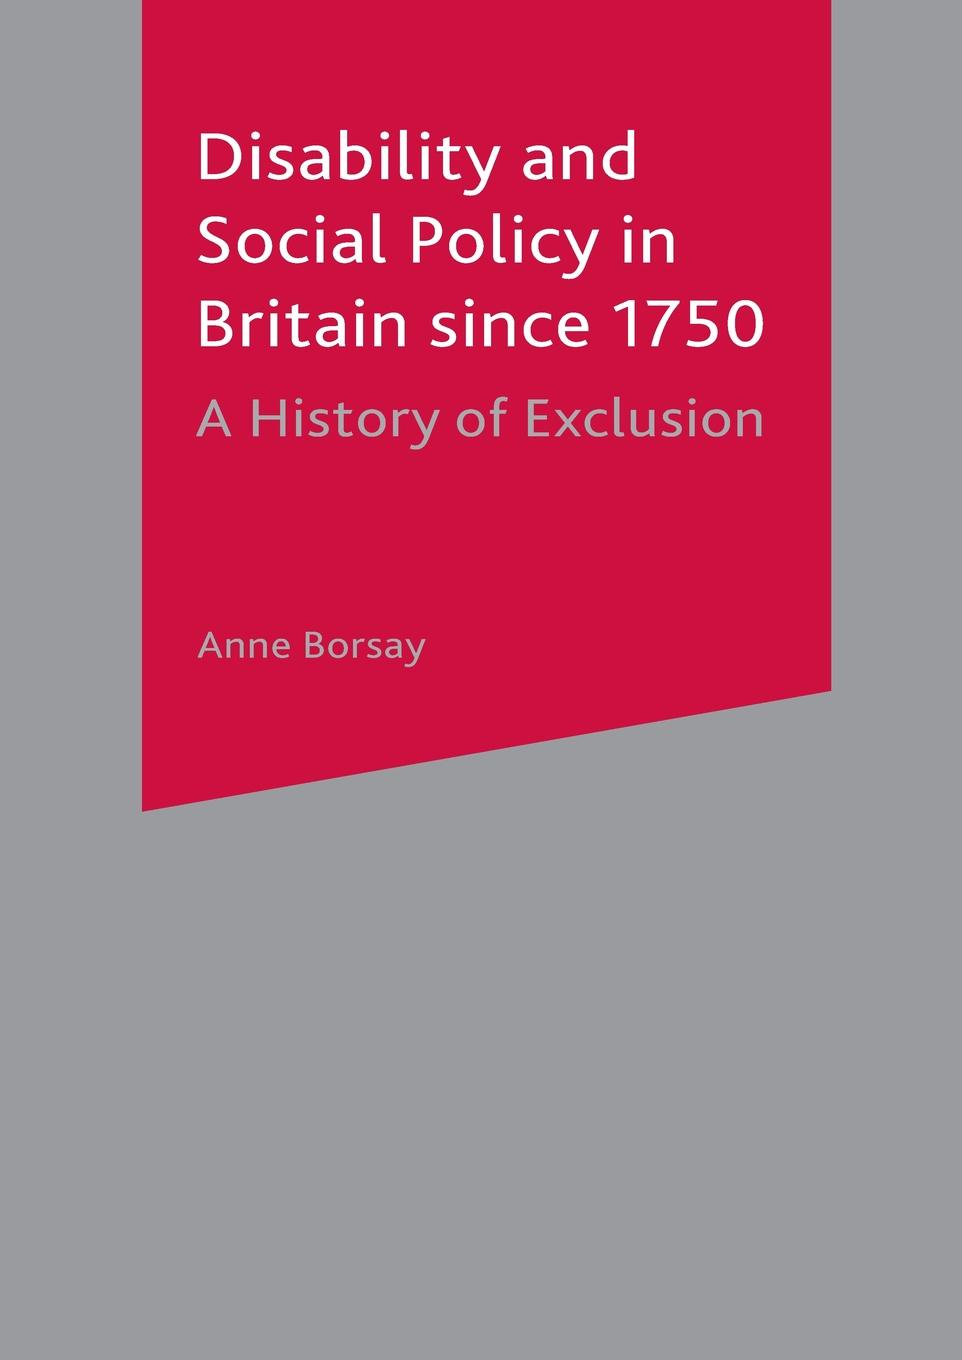 Anne Borsay Disability and Social Policy in Britain since 1750. A History of Exclusion romani exclusion in france